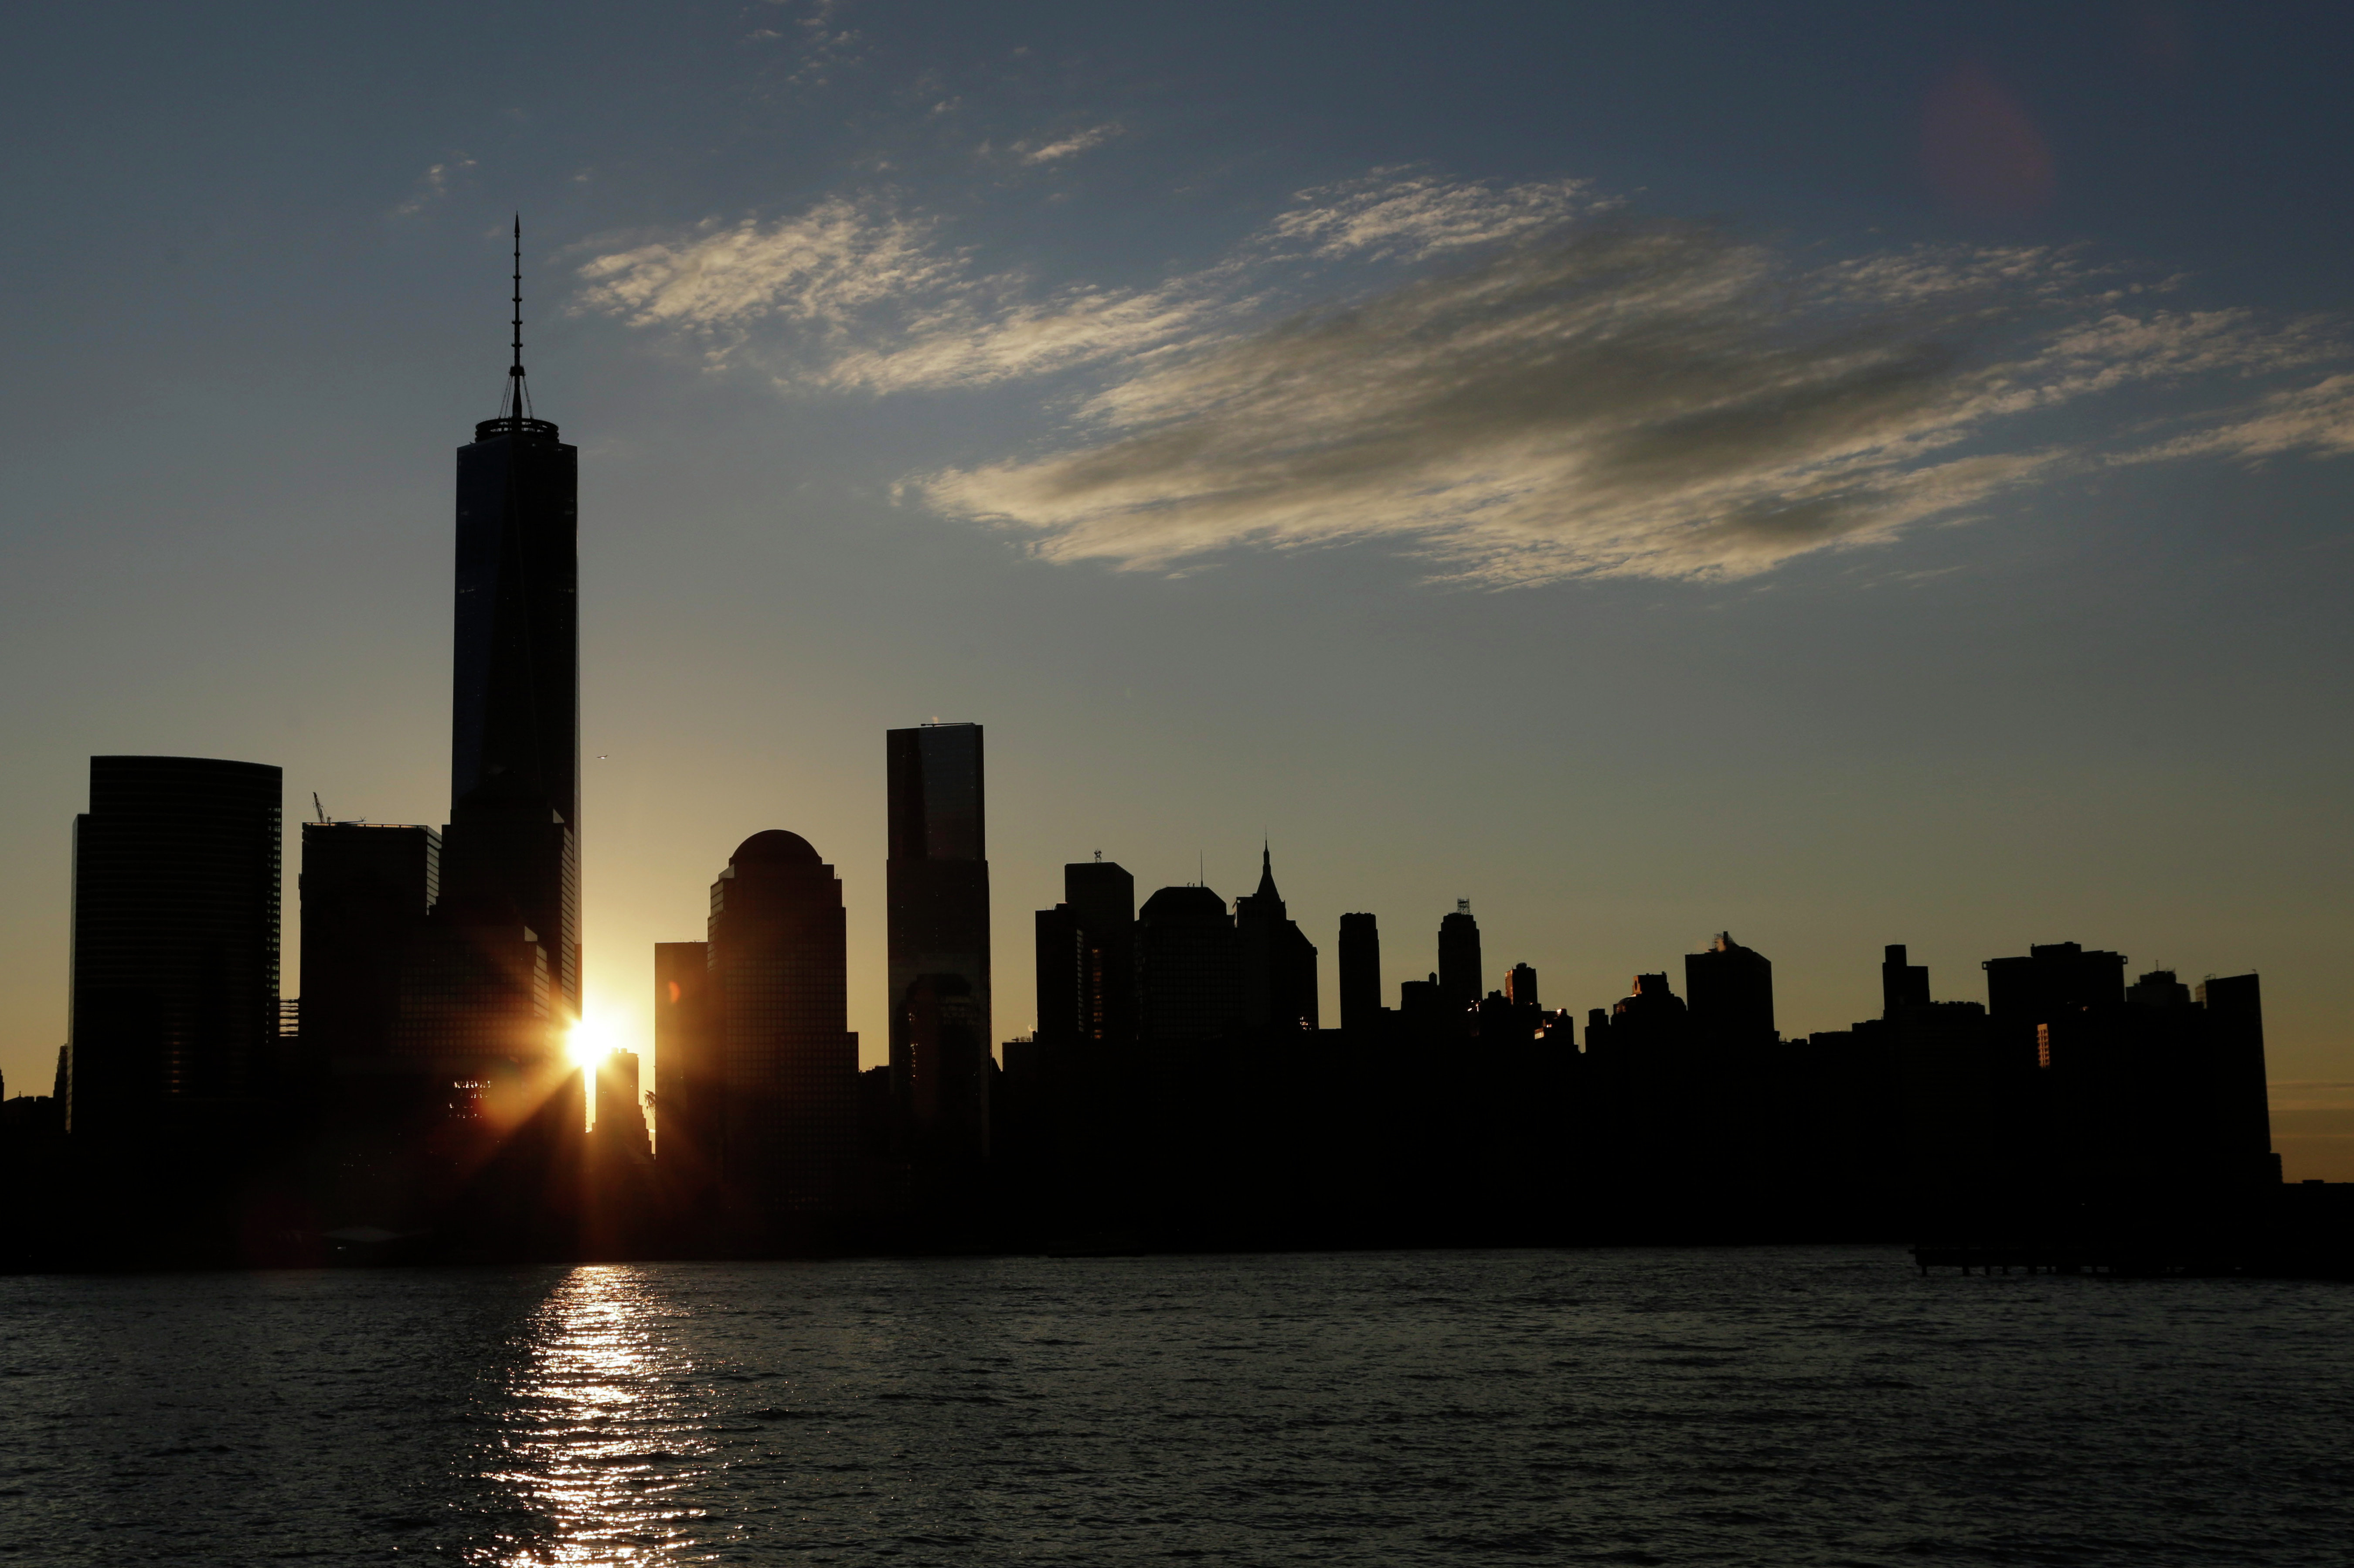 The sun rises next to One World Trade Center